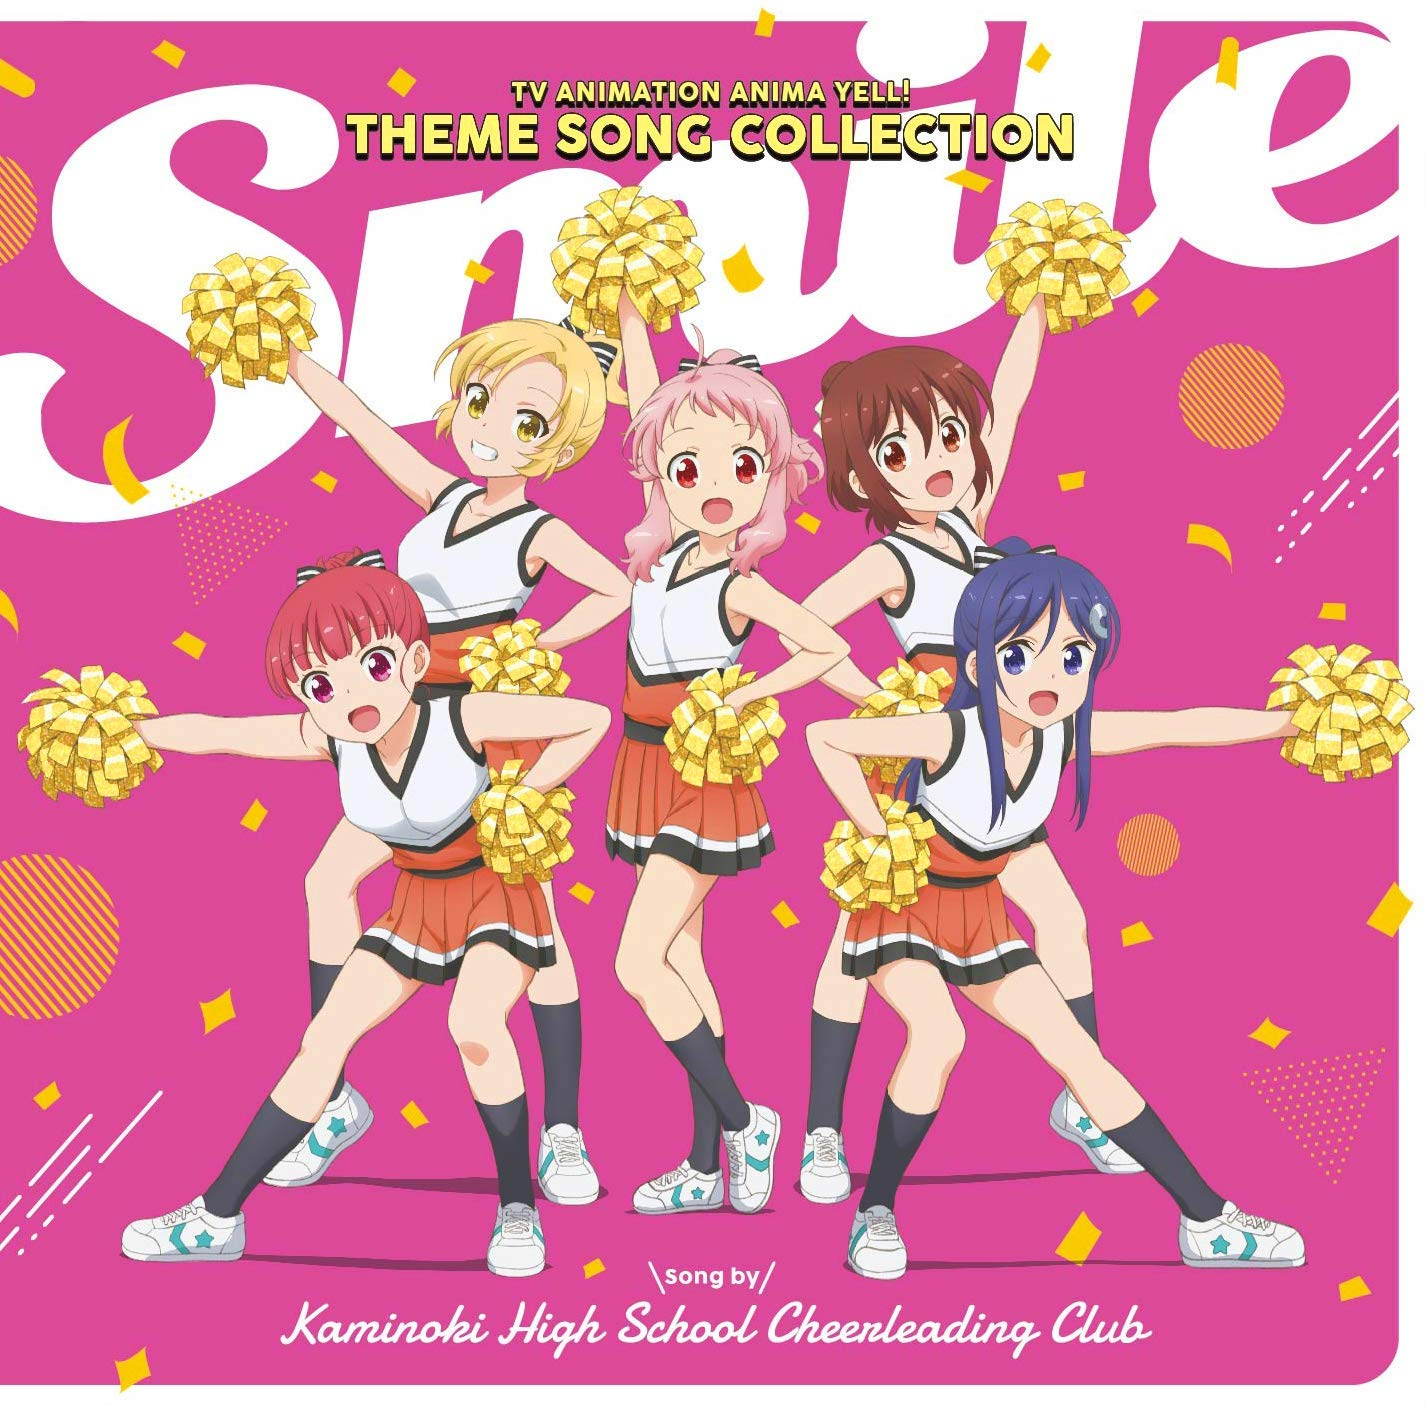 ANIMA YELL THEME SONG COLLECTION Smile OPampED